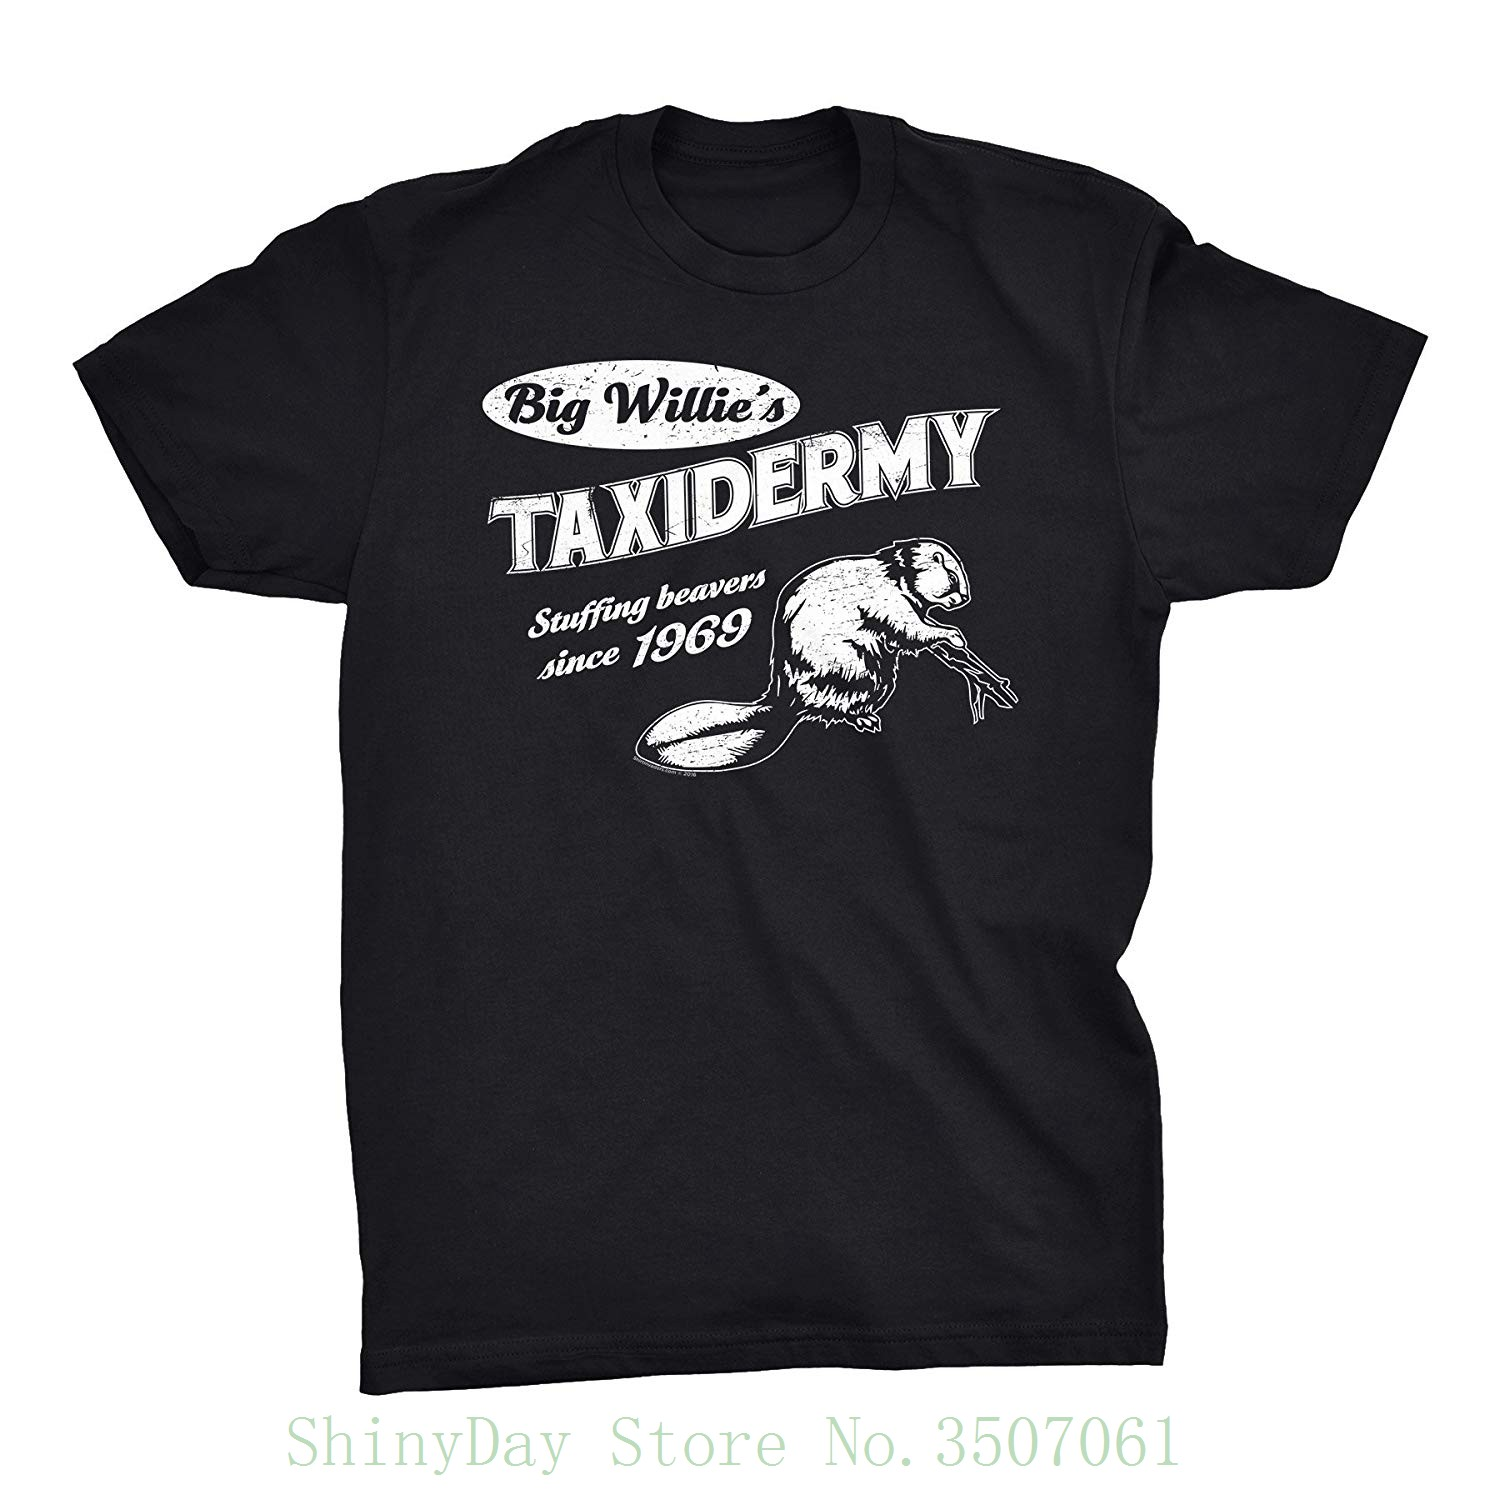 Big Willie's Taxidermy - Stuffing Beavers Since 1969 - <font><b>Funny</b></font> <font><b>Sex</b></font> Pun T-shirt For Male/boy <font><b>Tshirt</b></font> image